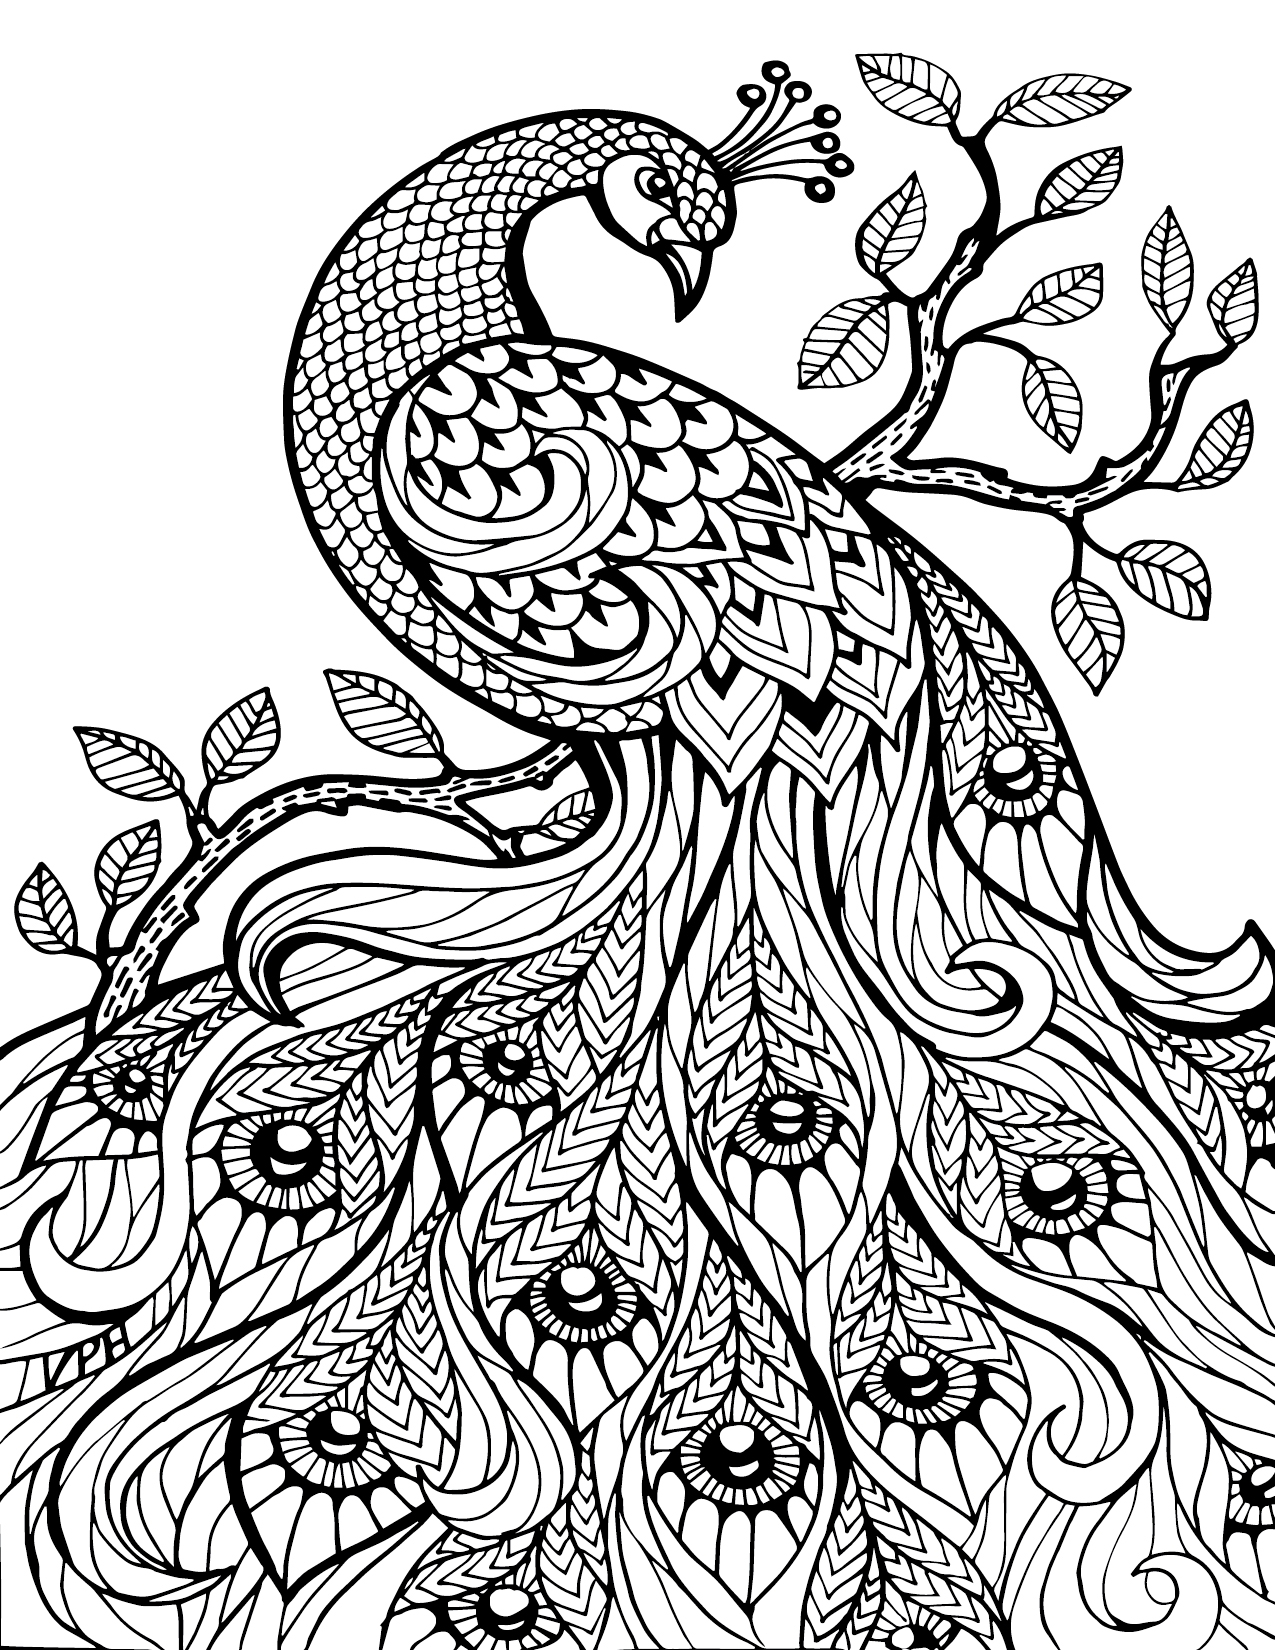 1275x1650 Adult Coloring Pages Animal Patterns Printable